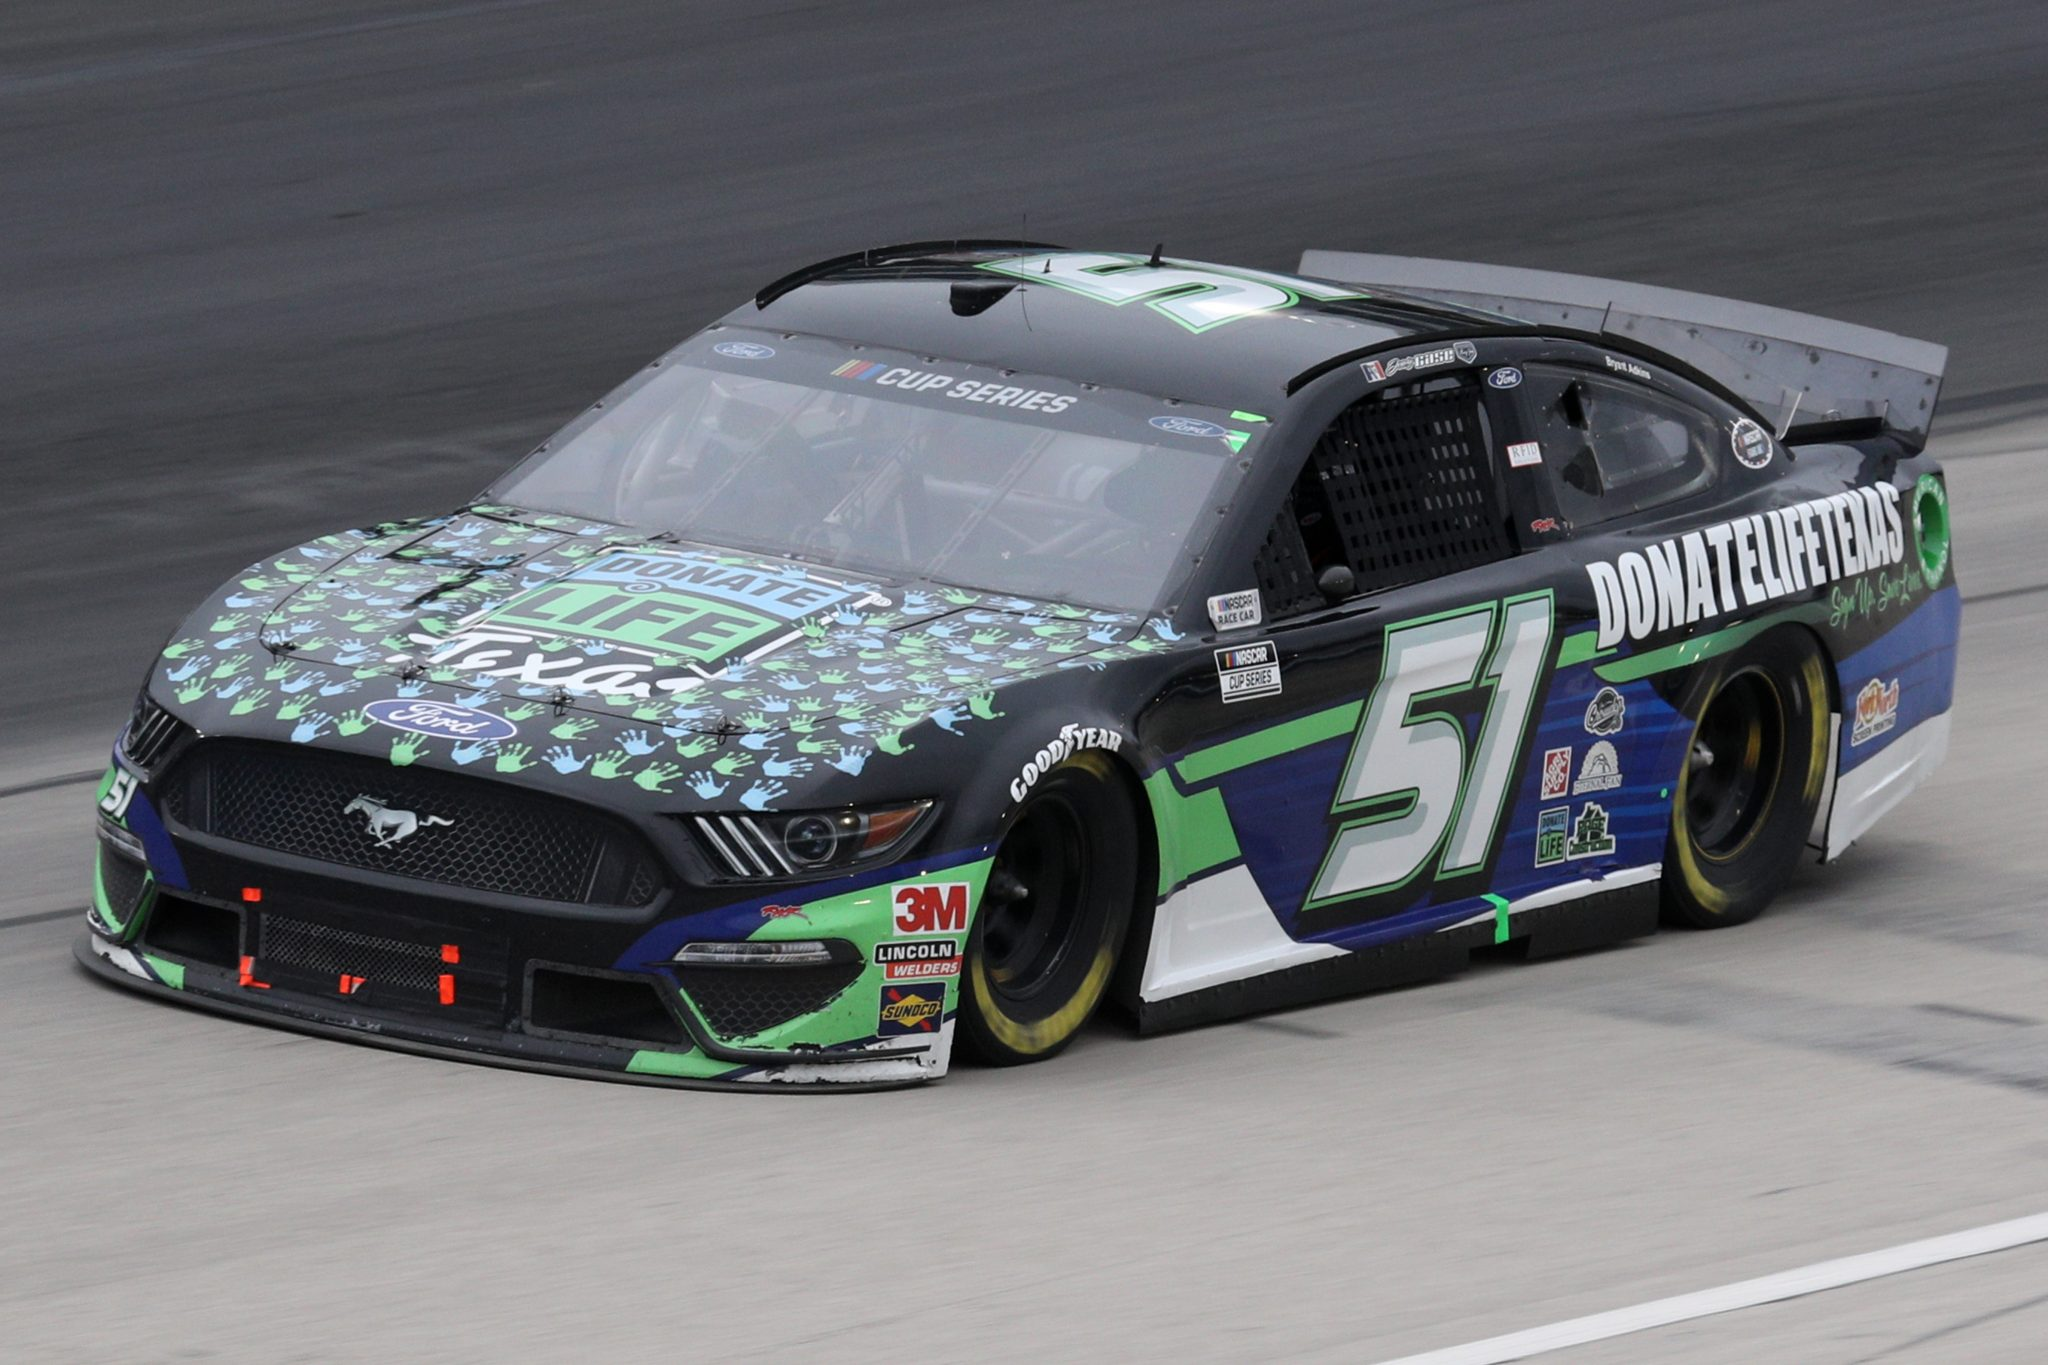 FORT WORTH, TEXAS - OCTOBER 28: Joey Gase, driver of the #51 Donate Life Texas Ford, drives during the NASCAR Cup Series Autotrader EchoPark Automotive 500 at Texas Motor Speedway on October 28, 2020 in Fort Worth, Texas. (Photo by Chris Graythen/Getty Images) | Getty Images